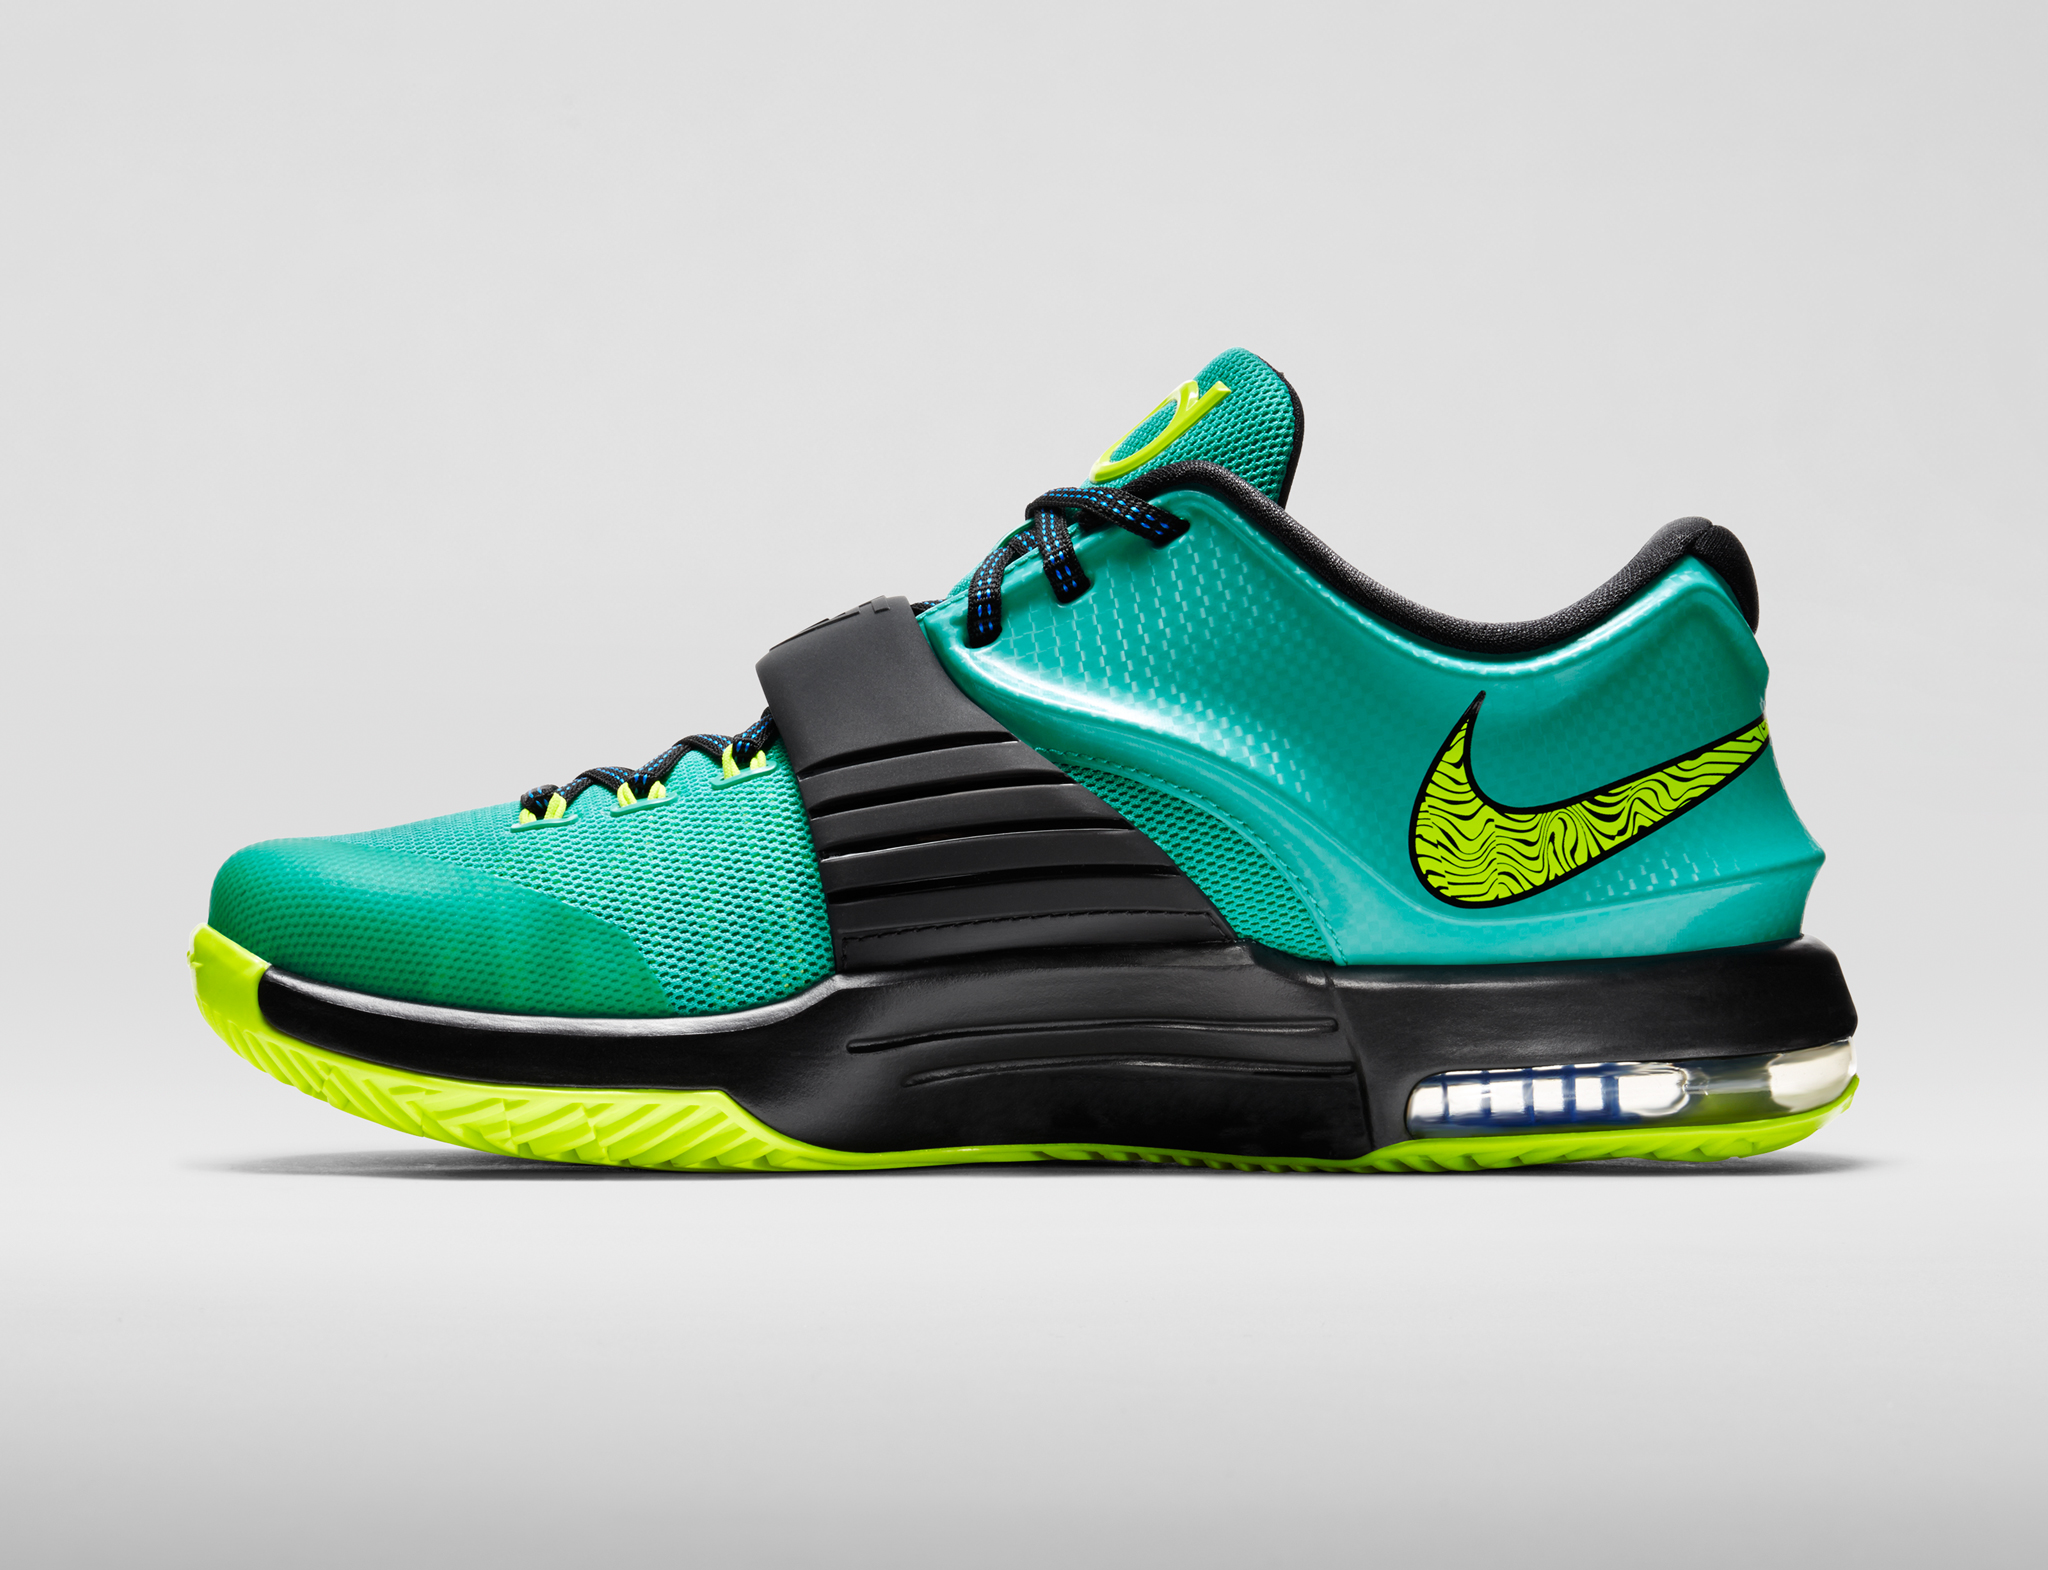 promo code 9d874 97e91 ... KD7 Uprising Elevating to the Top - Nike News ...